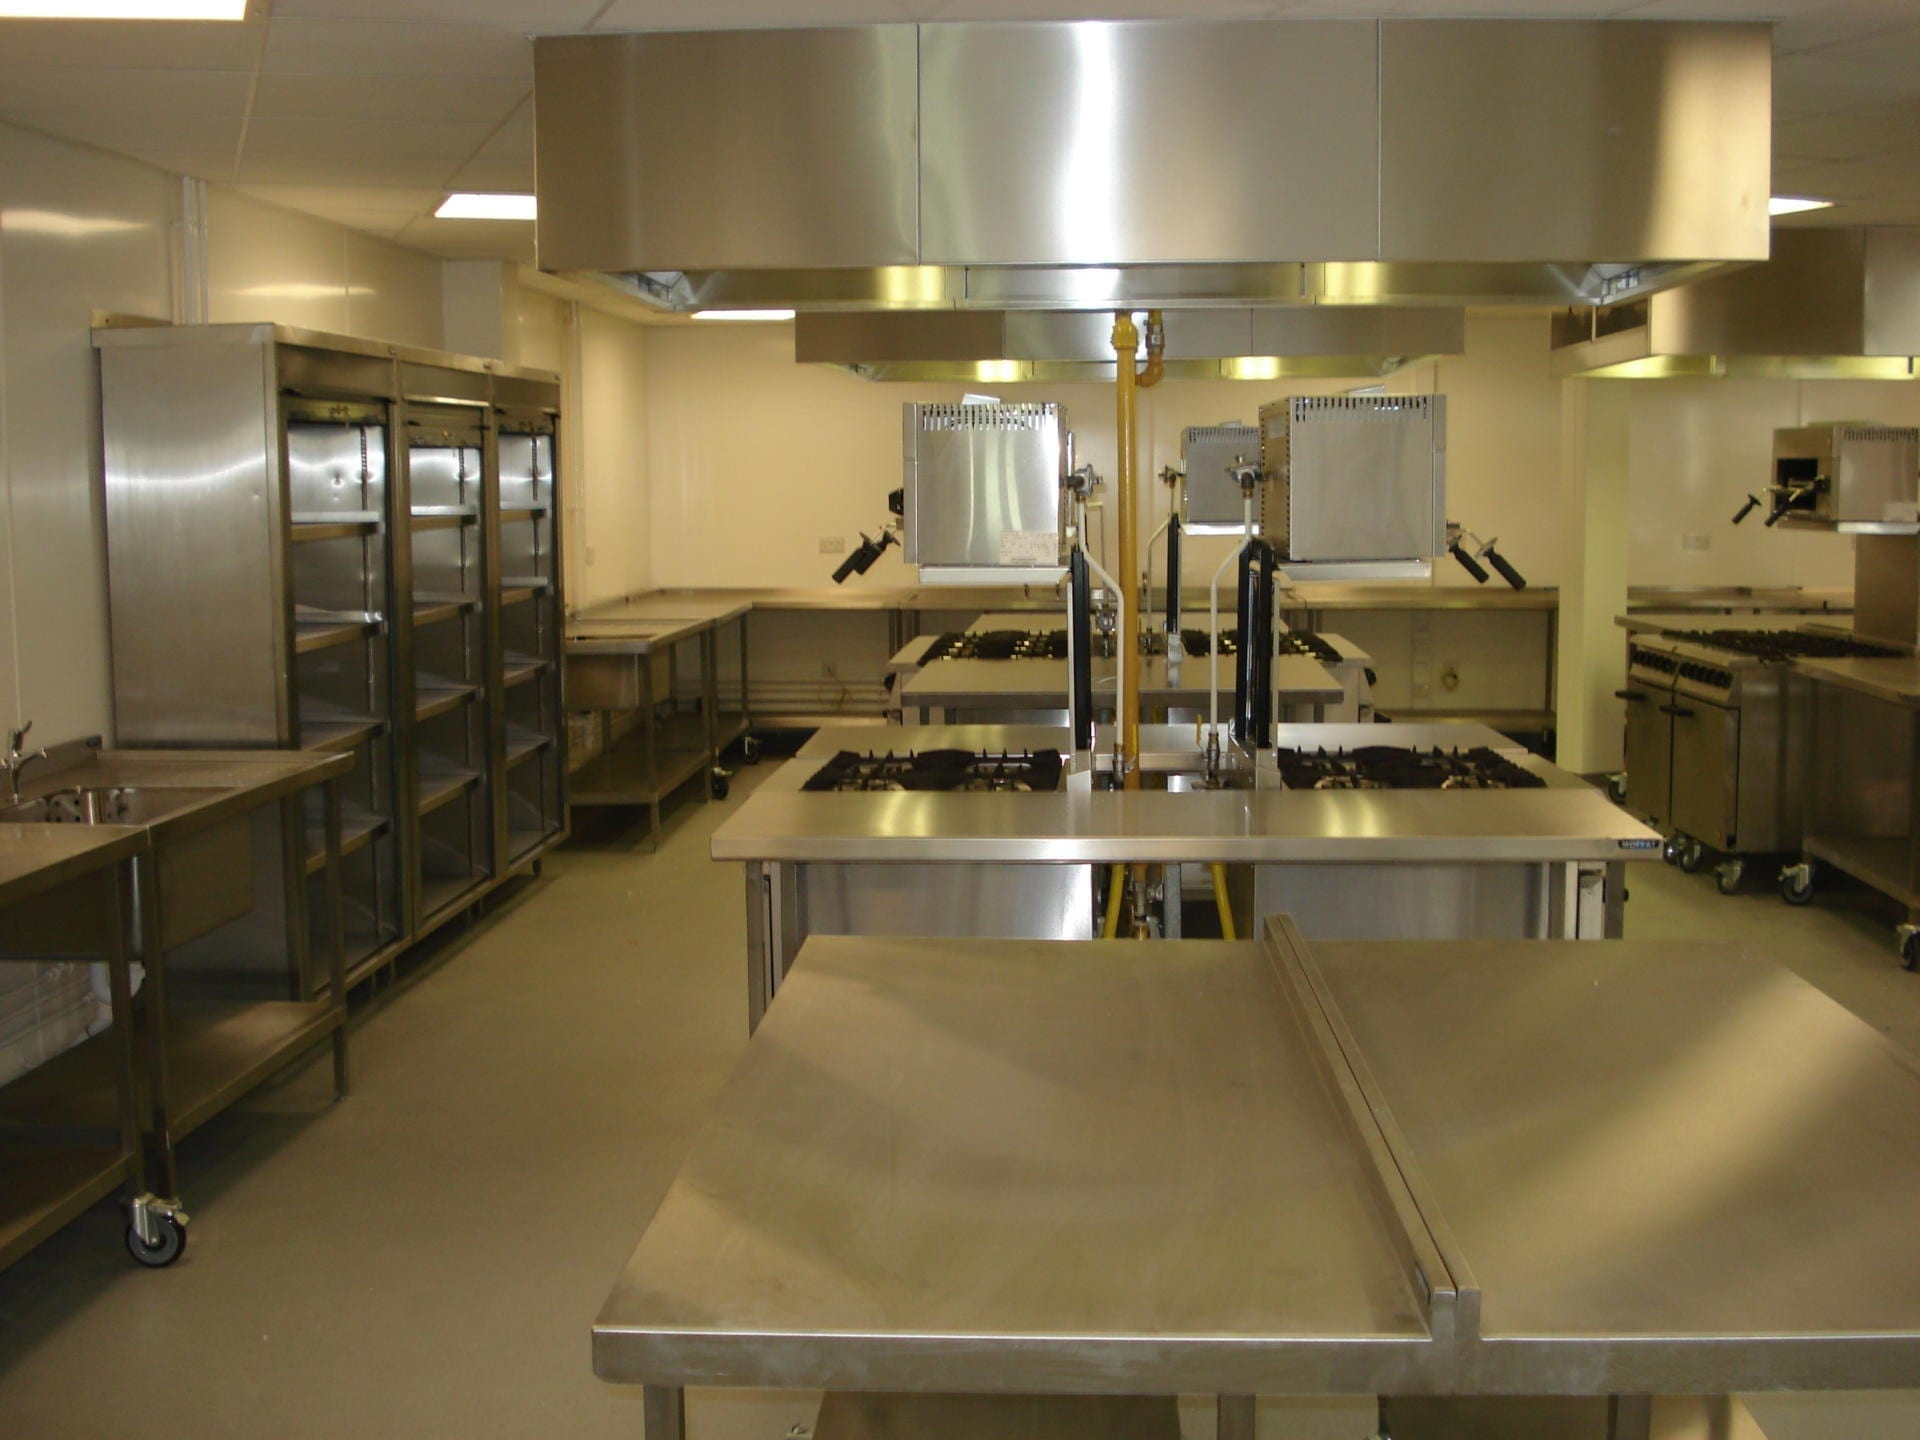 Gloucester-College-Gloucester-Servery-Stainless-Steel-fabrication-cooking-Foodtech-teaching-spacecatering_3